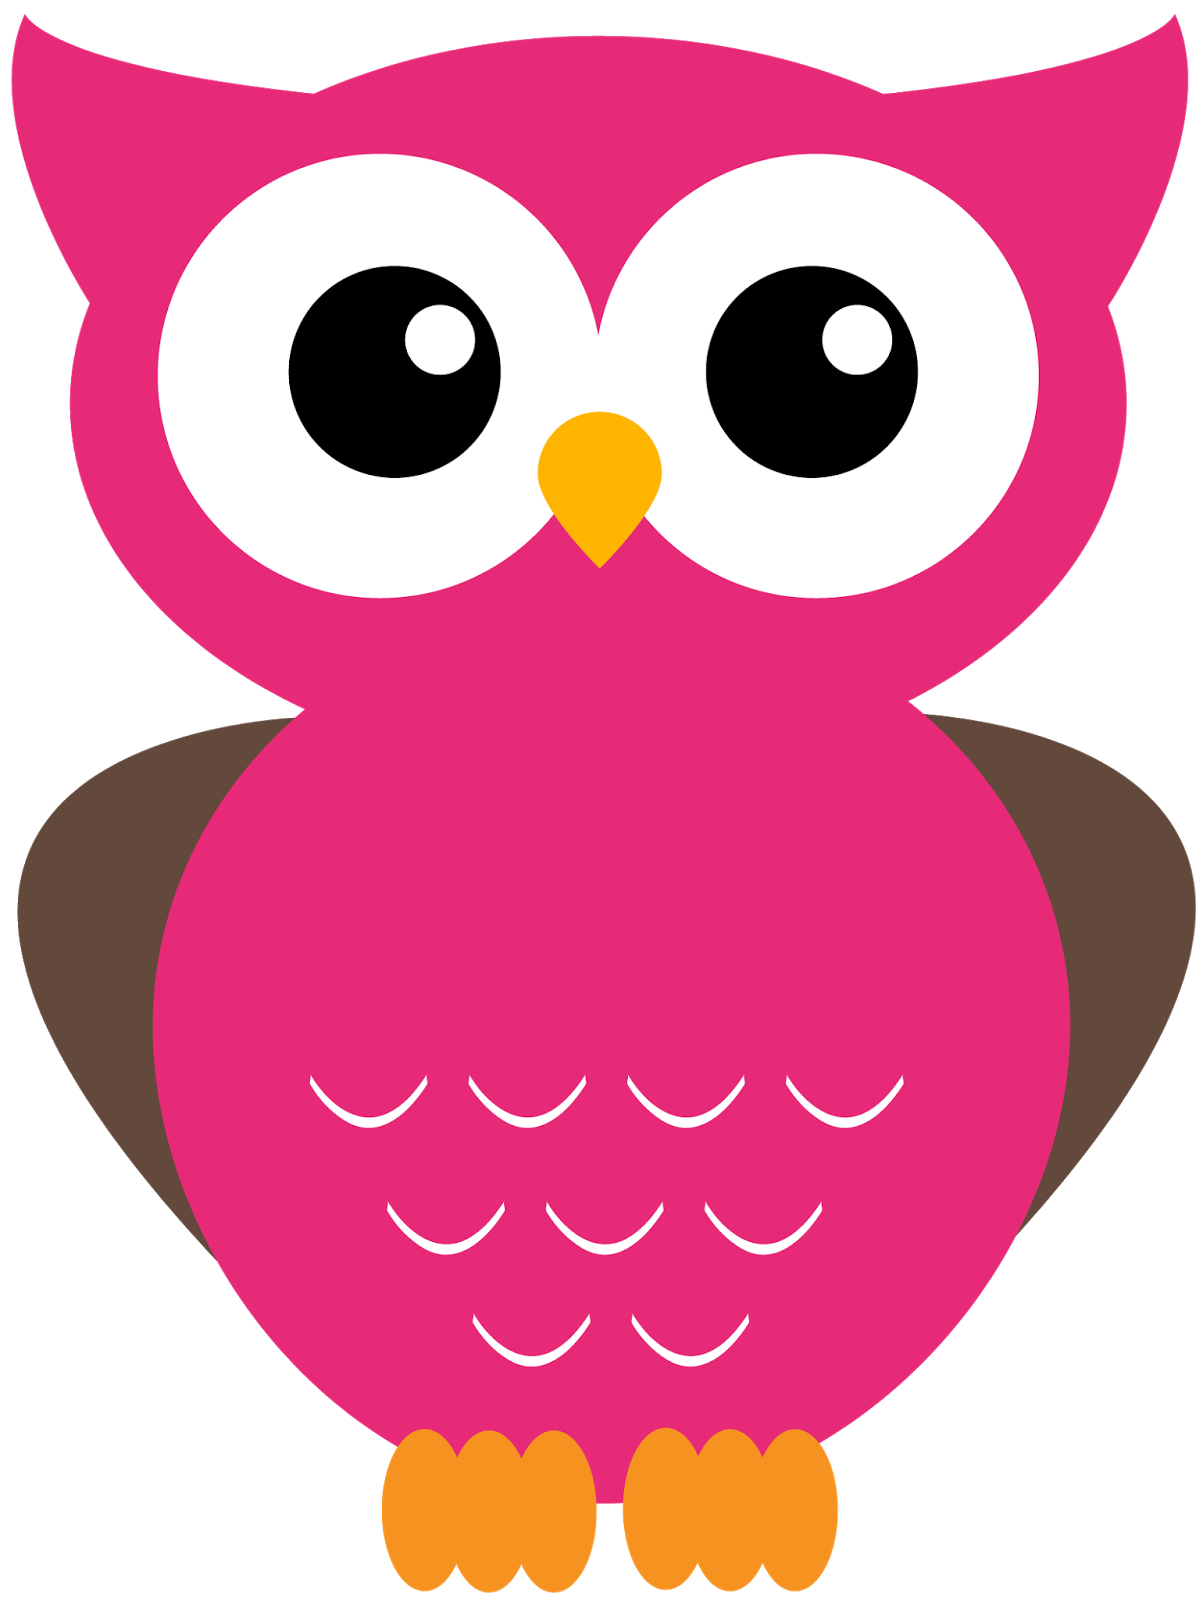 Owls clipart february. Giggle and print more